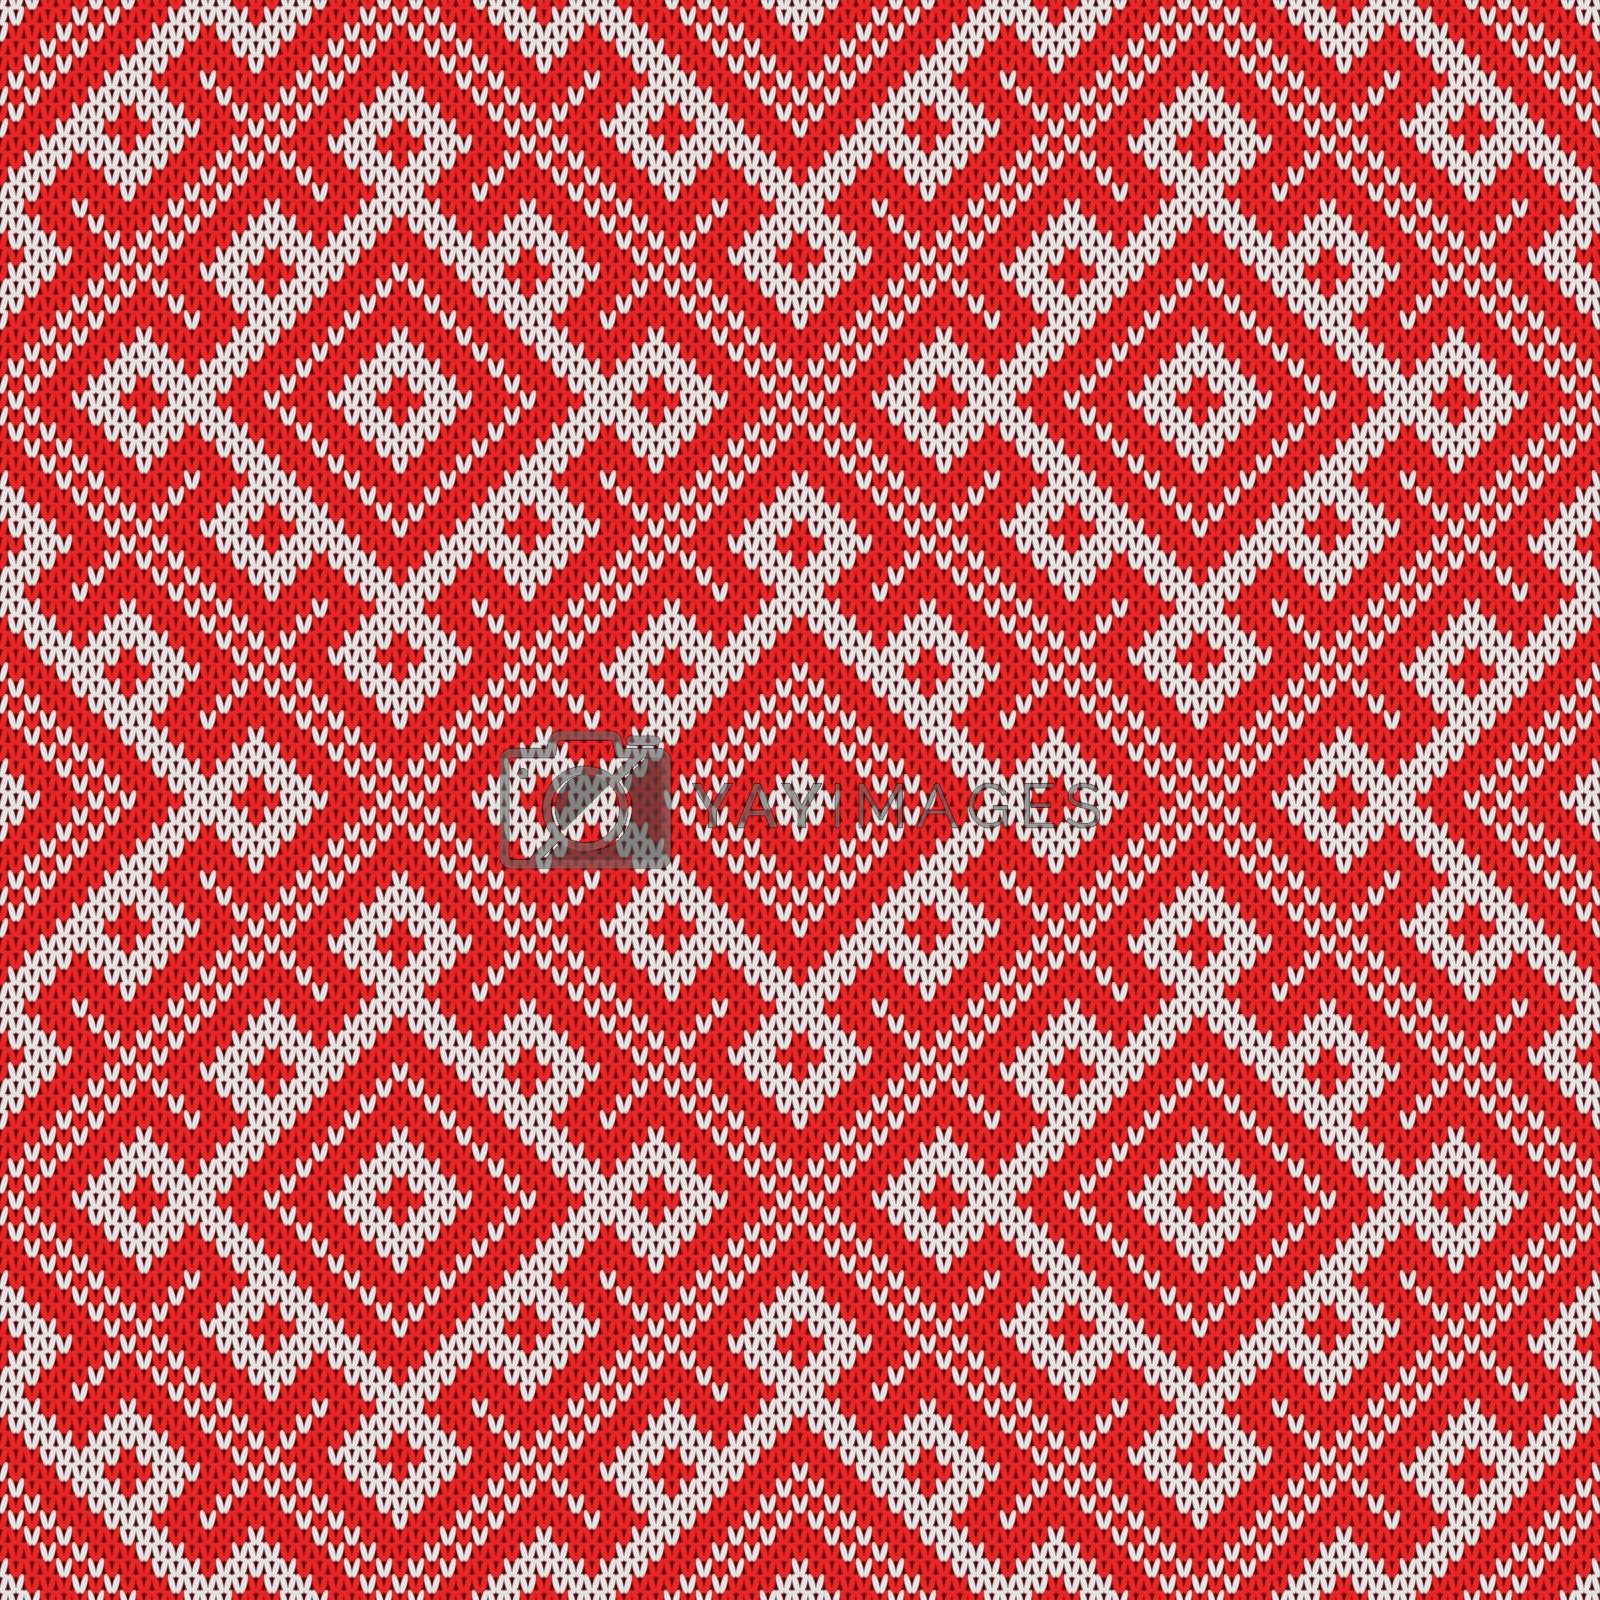 Seamless Knitting Pattern.Based on traditional Russian ornament.Red and white.Wool Knit Texture Imitation.